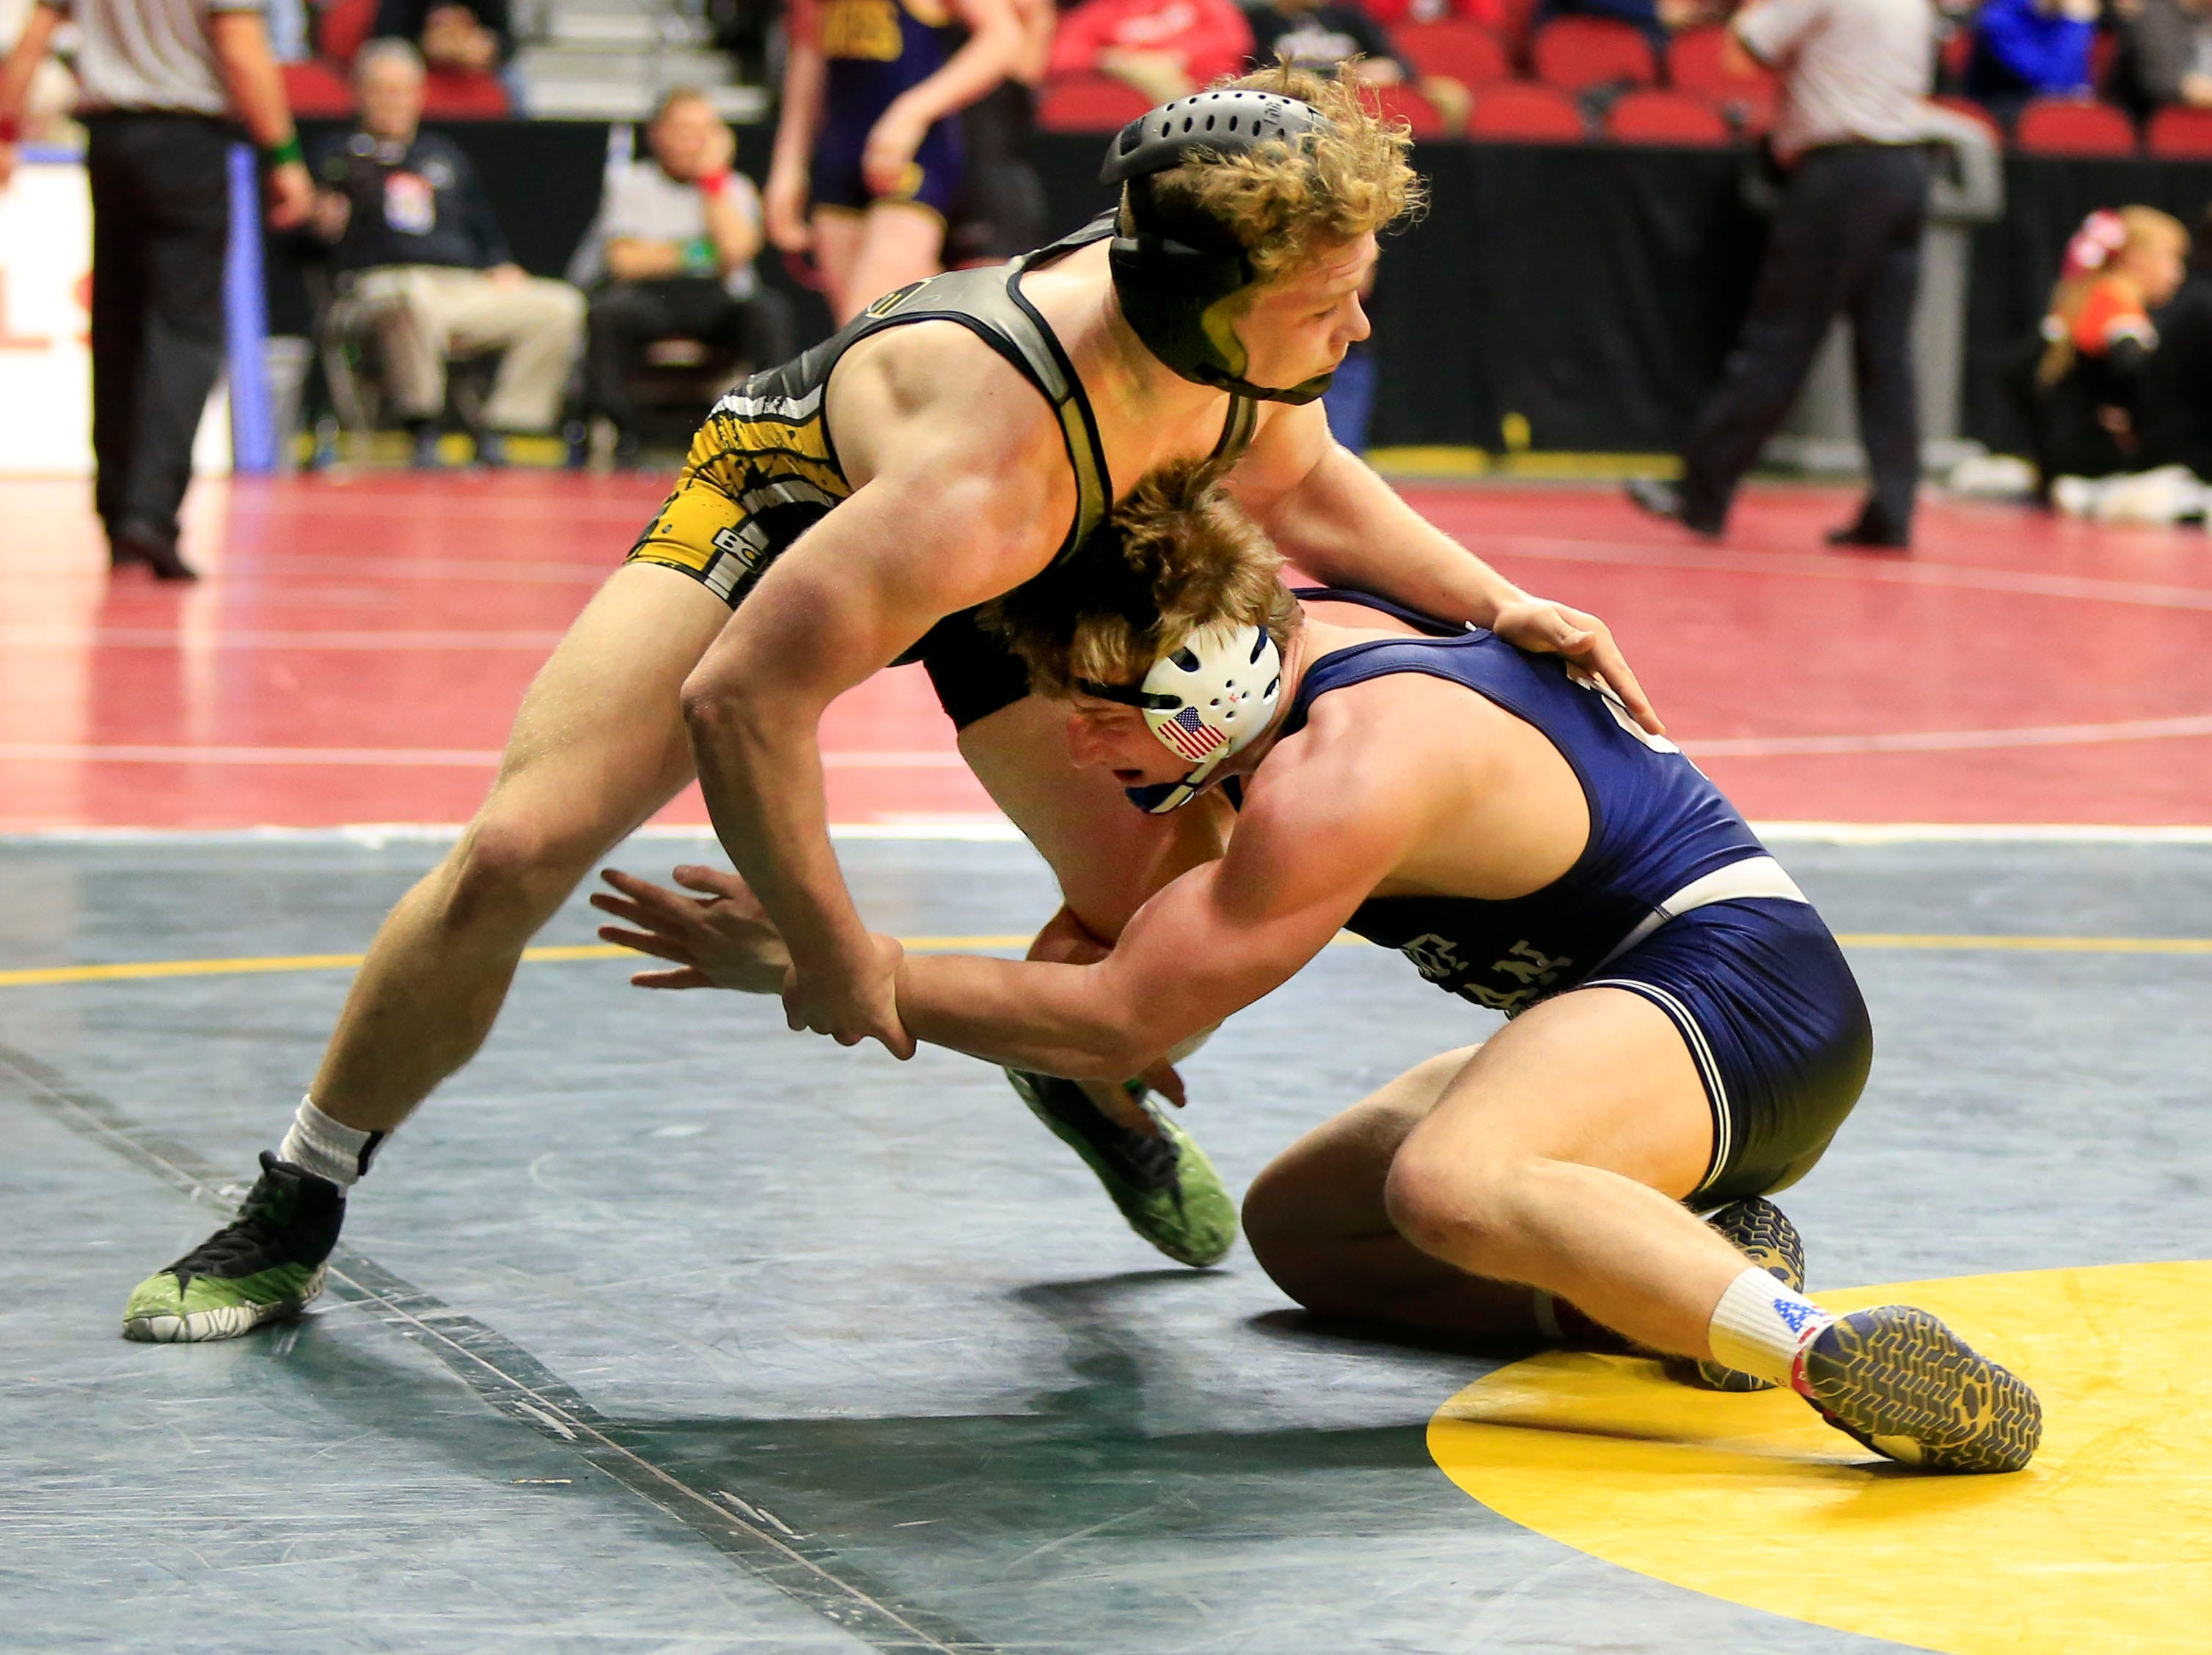 Sage Walker of Eddyville-Blakesburg-Fremont defeats Frank Vondrak of Bishop Heelan during a 2A 170 Lb match at the state wrestling tournament Thursday, Feb. 14, 2019.